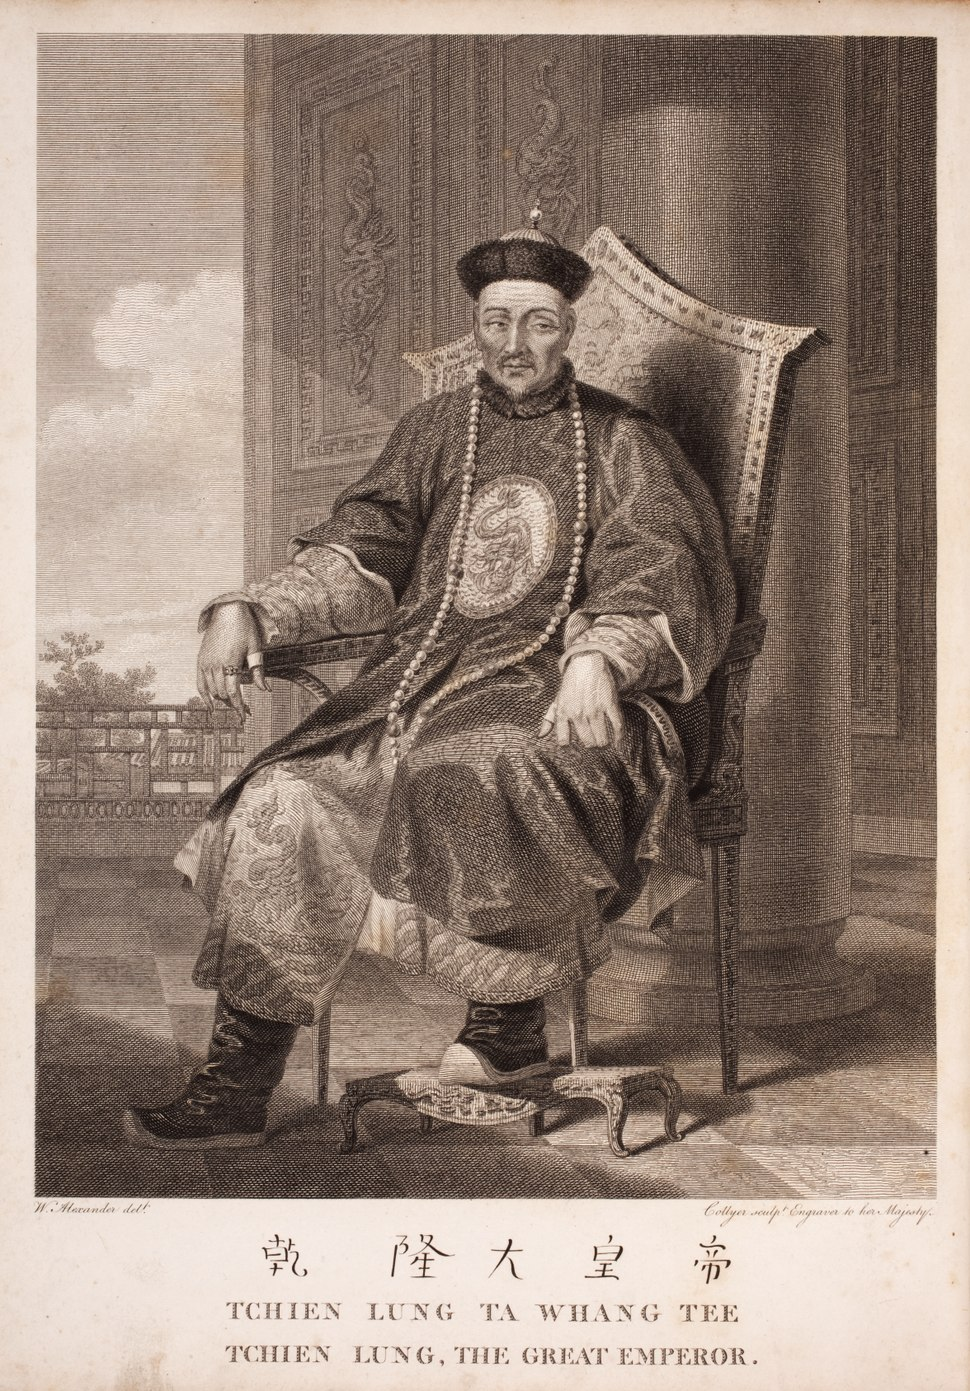 George-Leonard-Staunton-et-al-An-authentic-account-of-an-embassy-from-the-king-of-Great Britain-to-the-emperor-of-China MG 0725